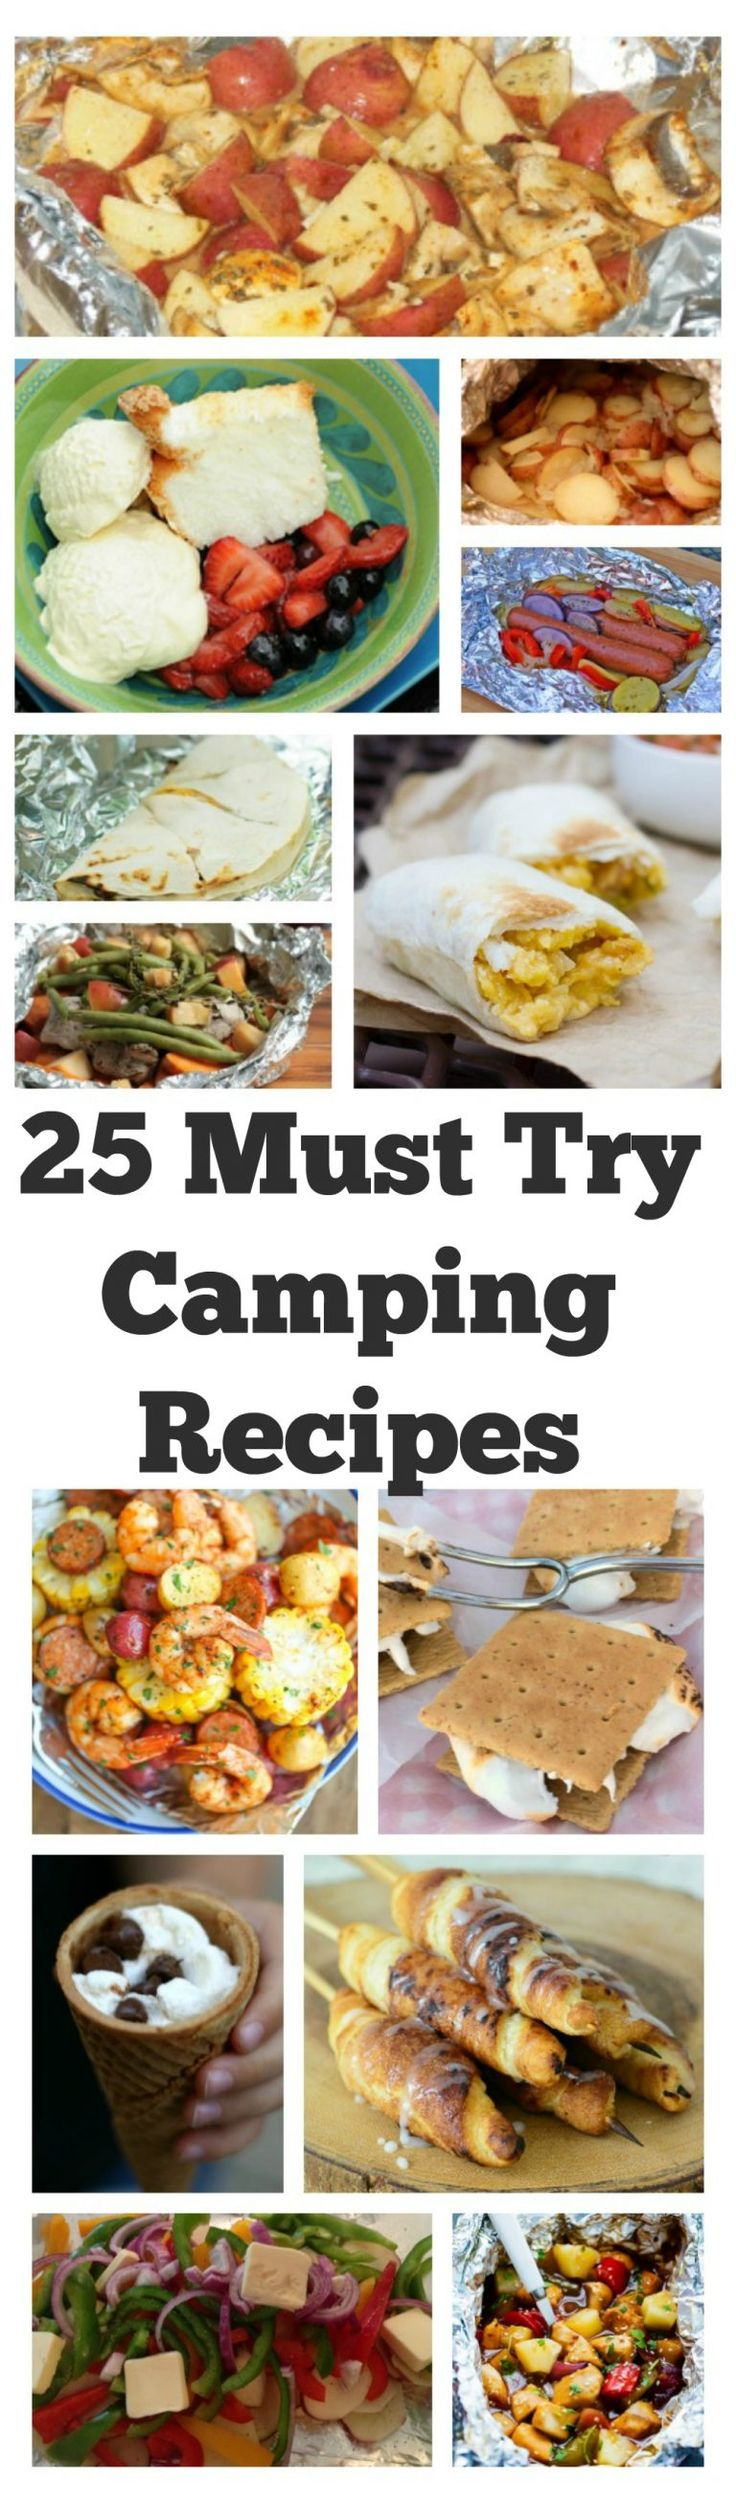 25 Must Try Camping Recipes                                                                                                                                                                                 More